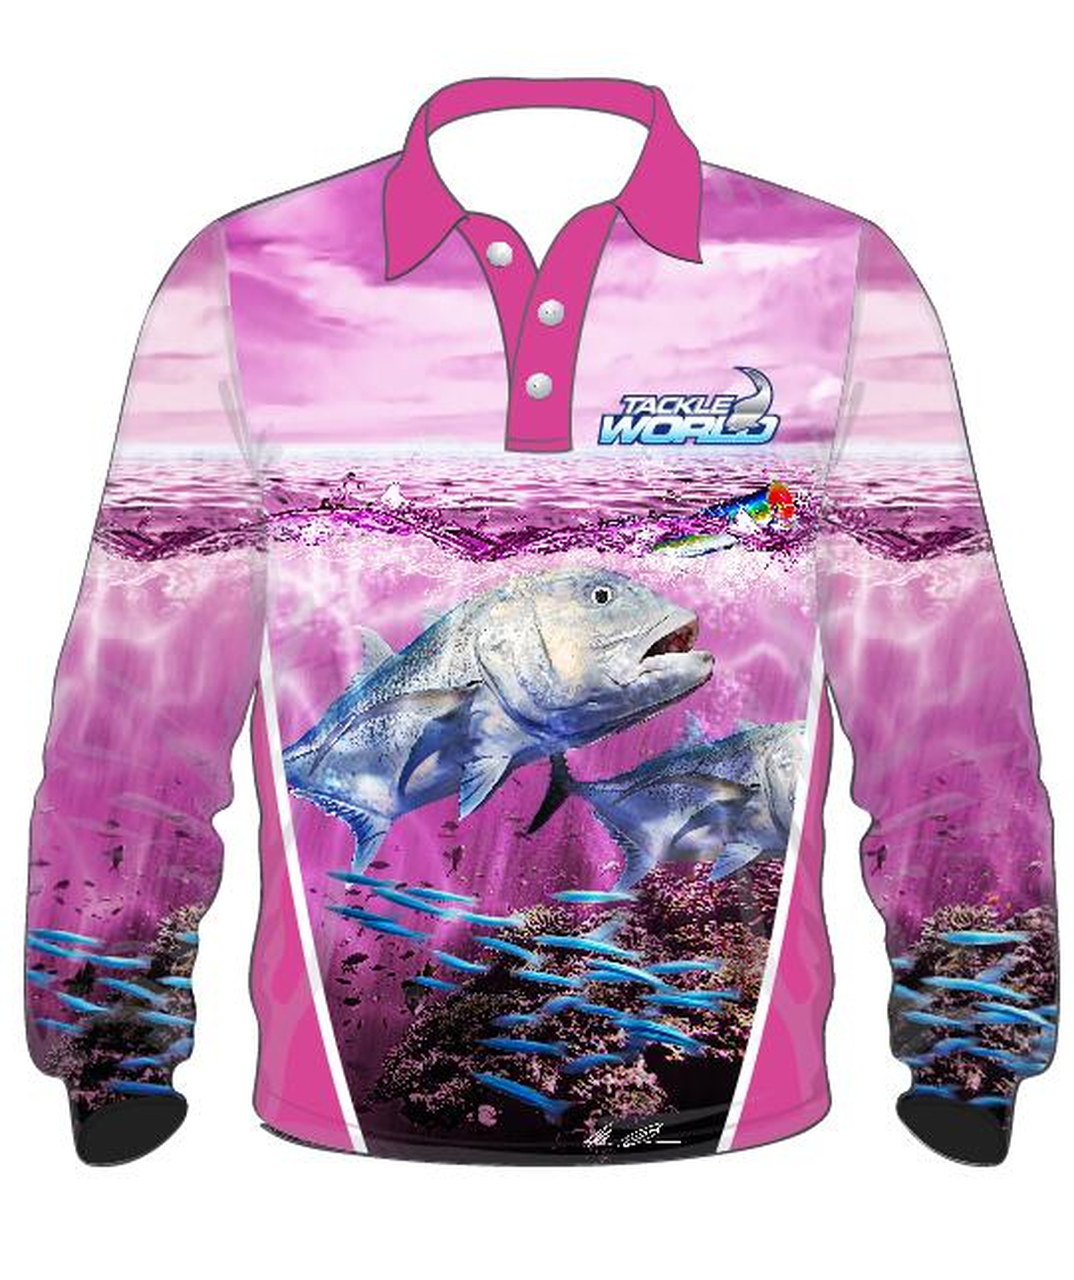 Tackle World GT Ladies Long Sleeve Fishing Shirt Jersey